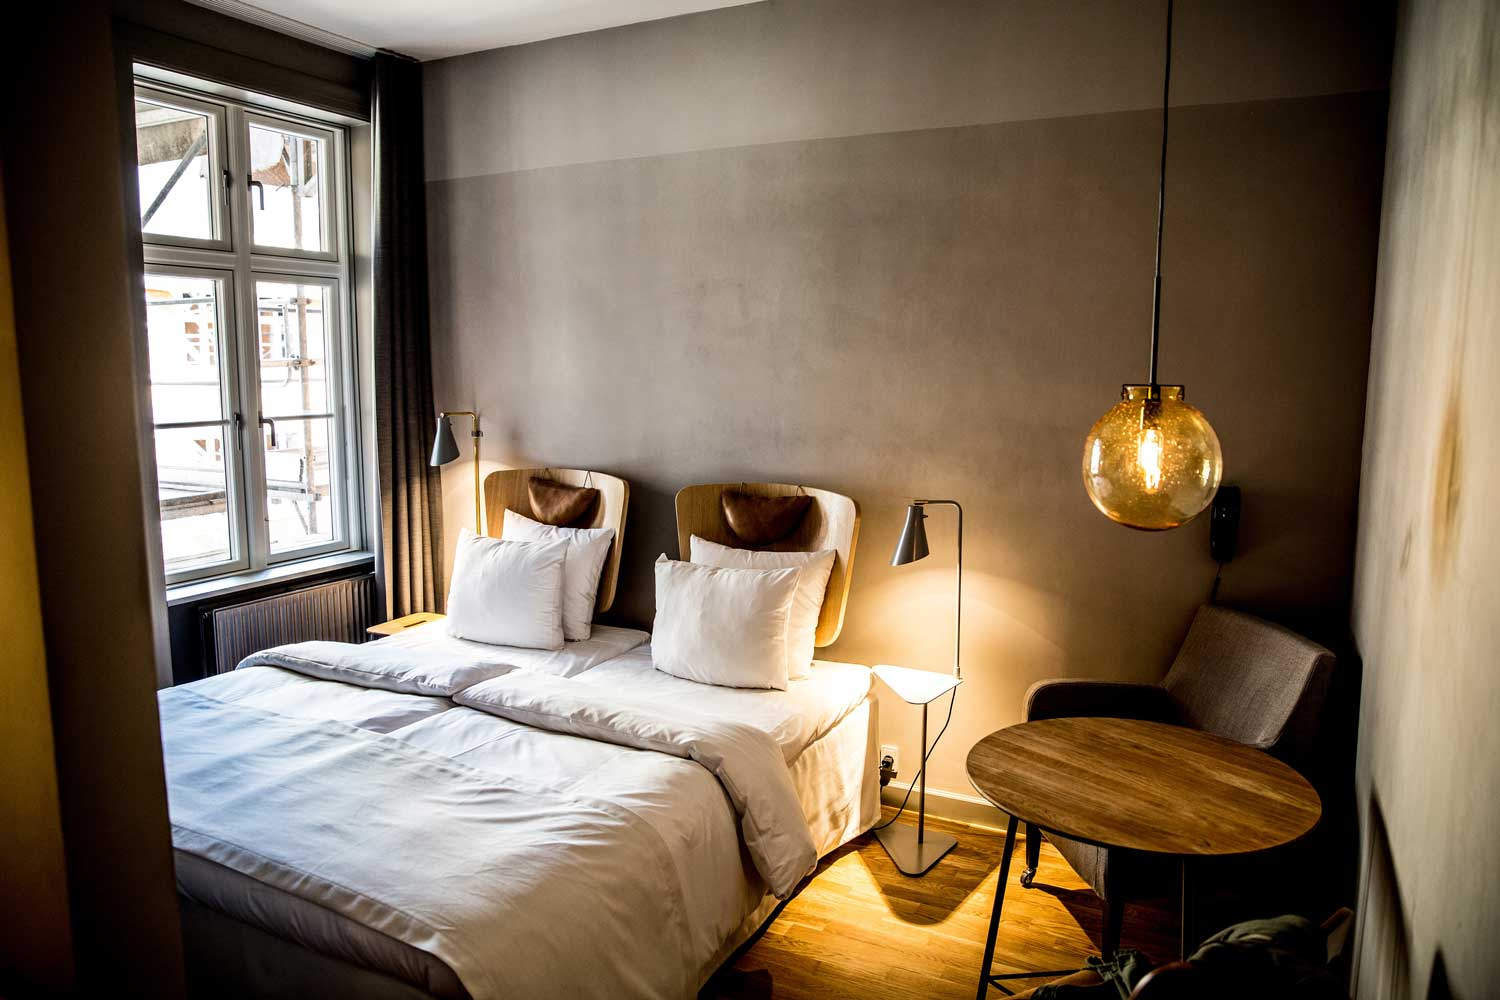 Hotel sp34 copenhagen denmark yellowtrace for Interior design agency copenhagen